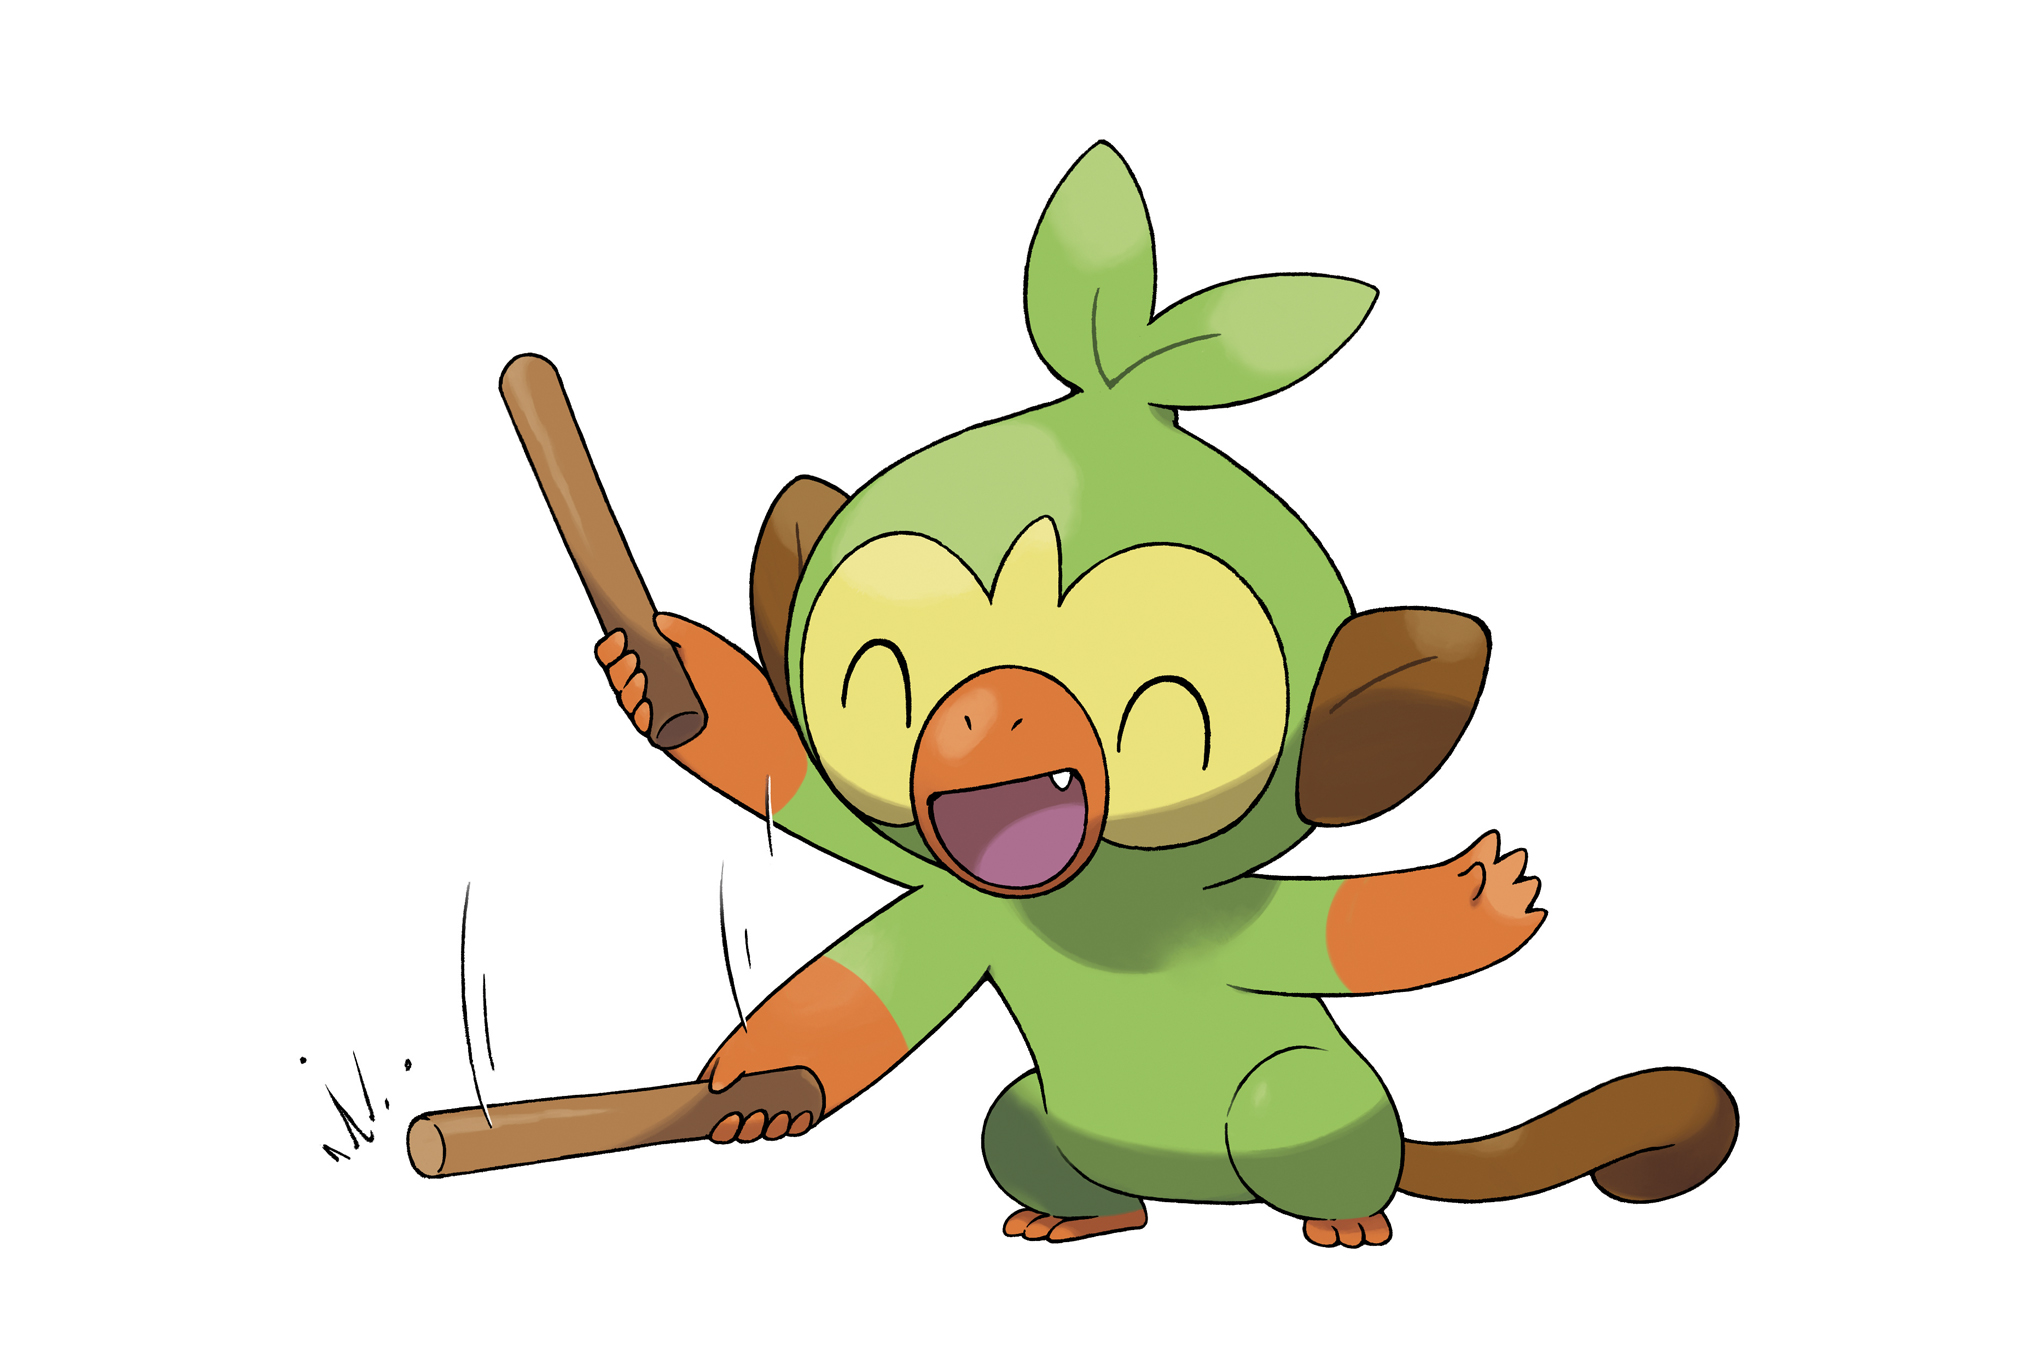 Grookey excited bangs a stick on the ground